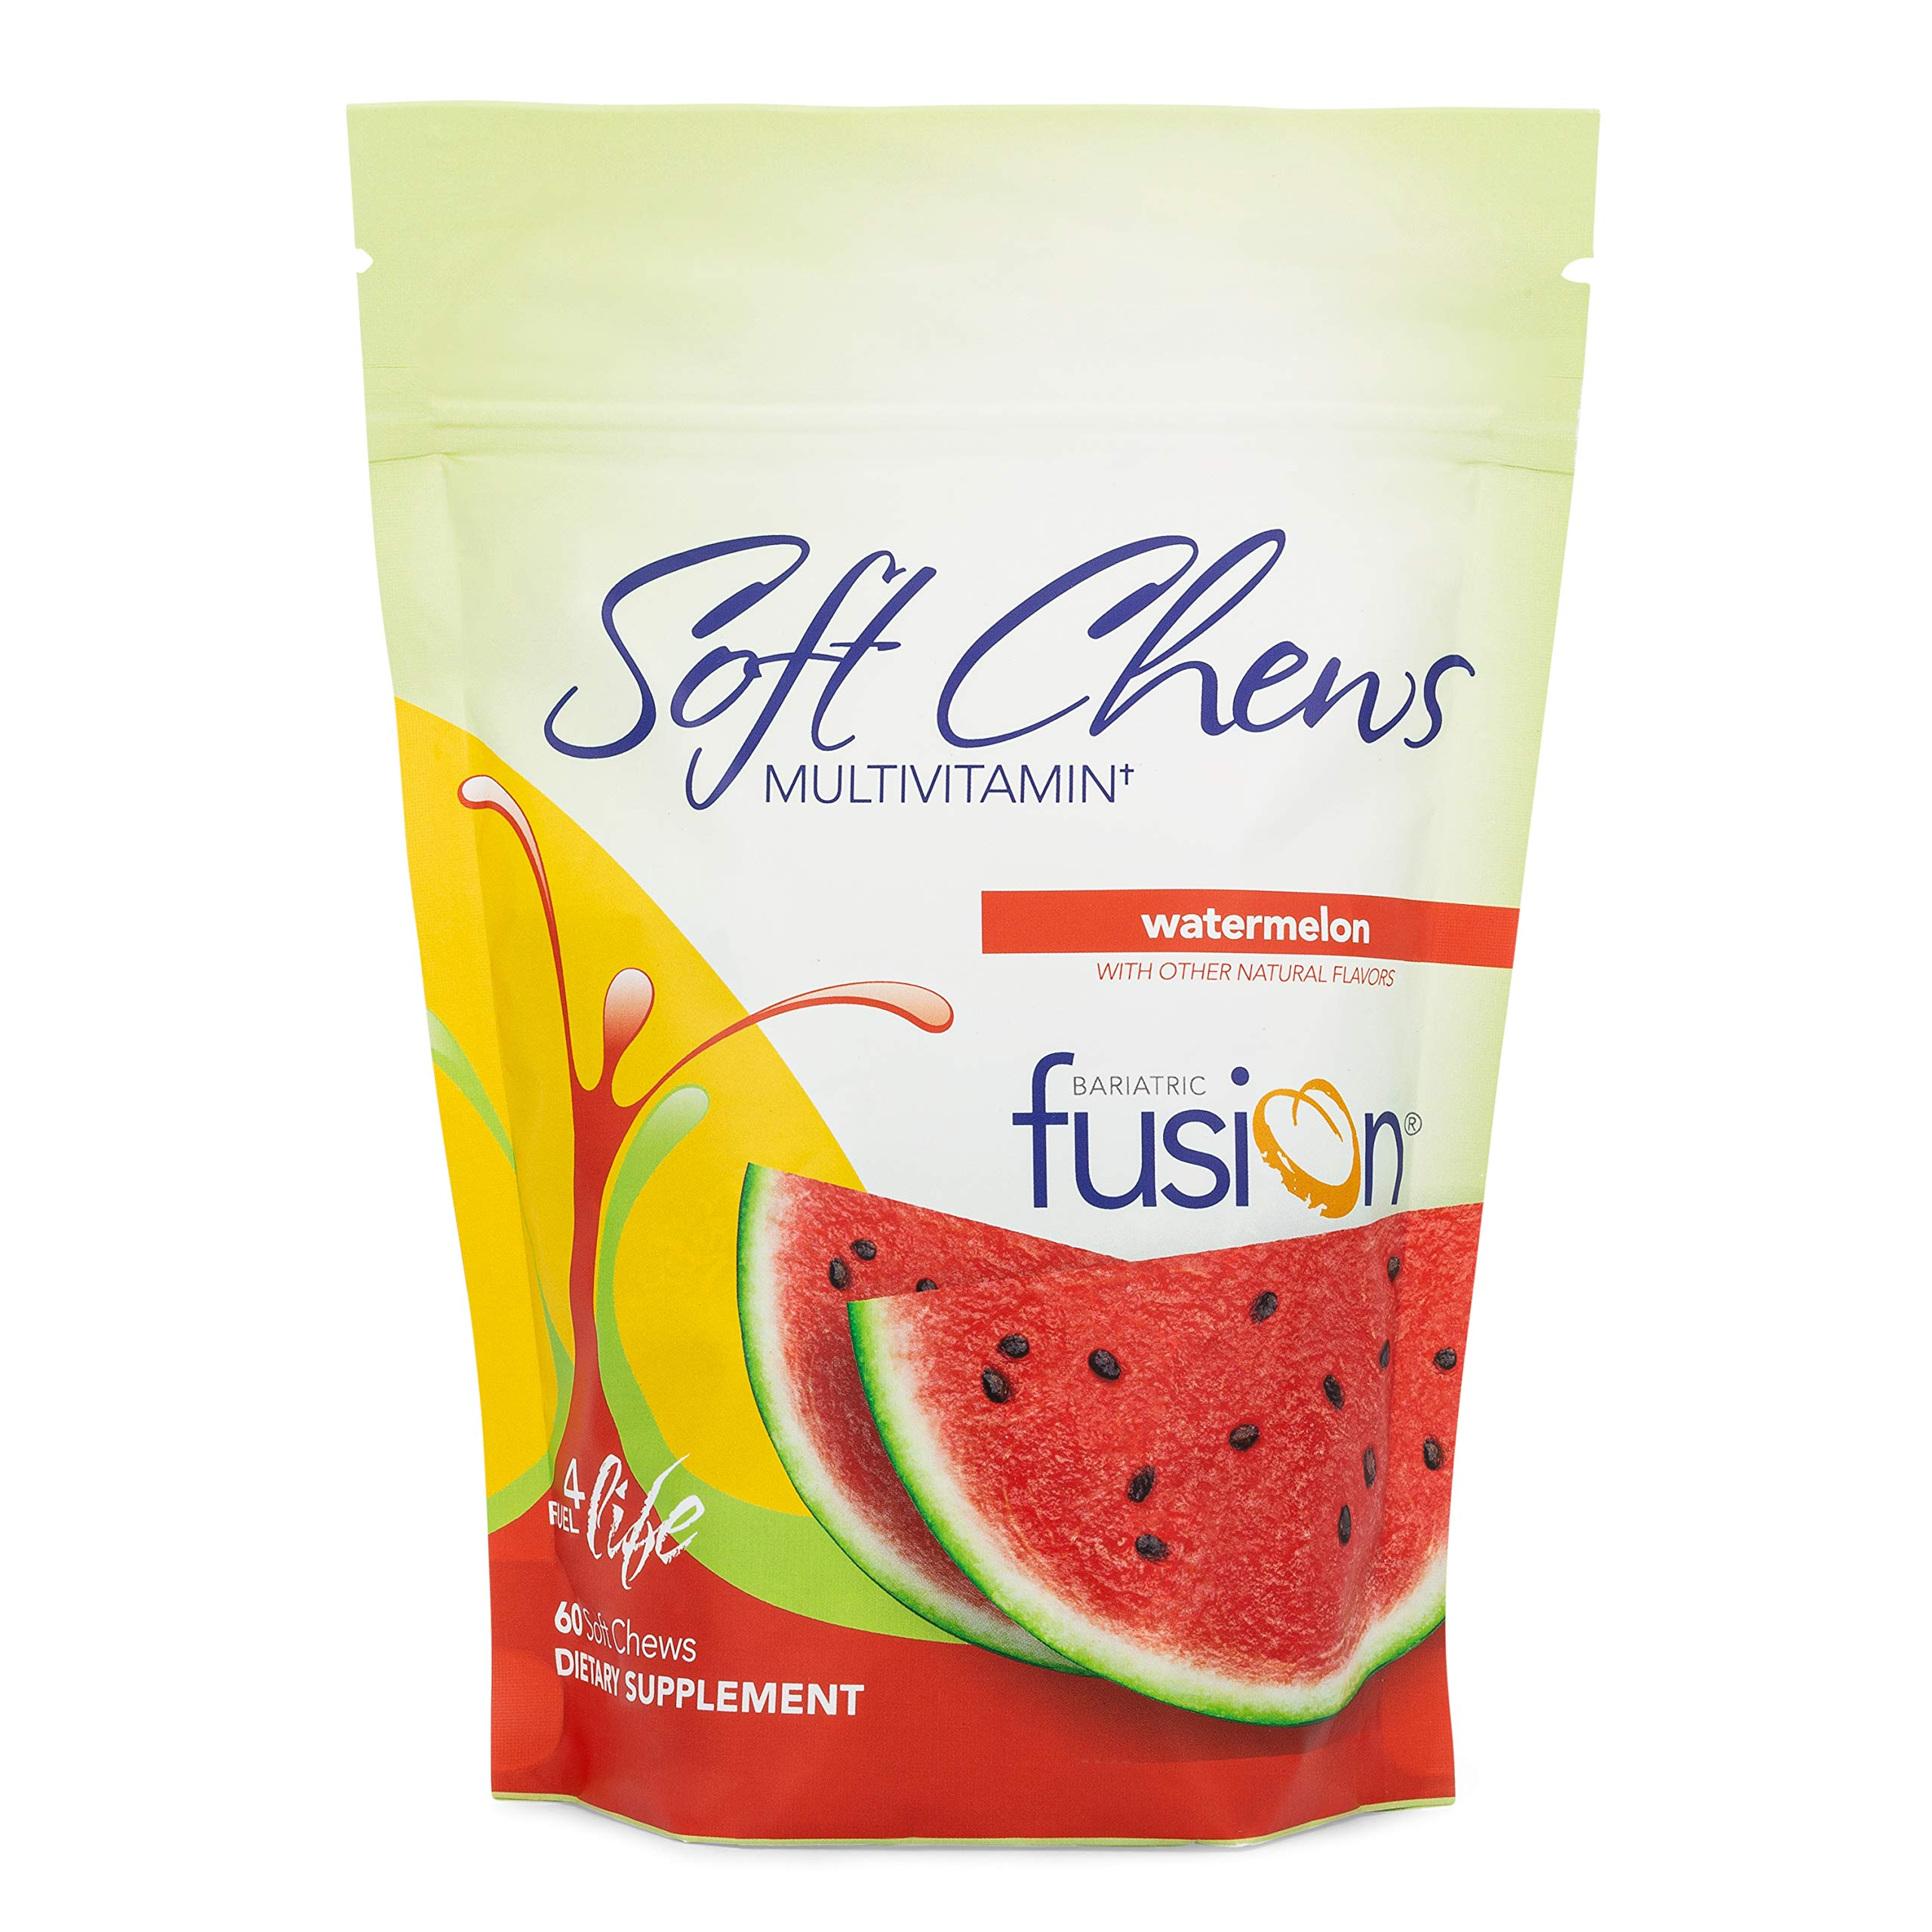 Bariatric Fusion Watermelon Bariatric Multivitamin Soft Chews for Post Bariatric Surgery Patients Including Gastric Bypass and Sleeve Gastrectomy, 60 Count, 1 Month Supply